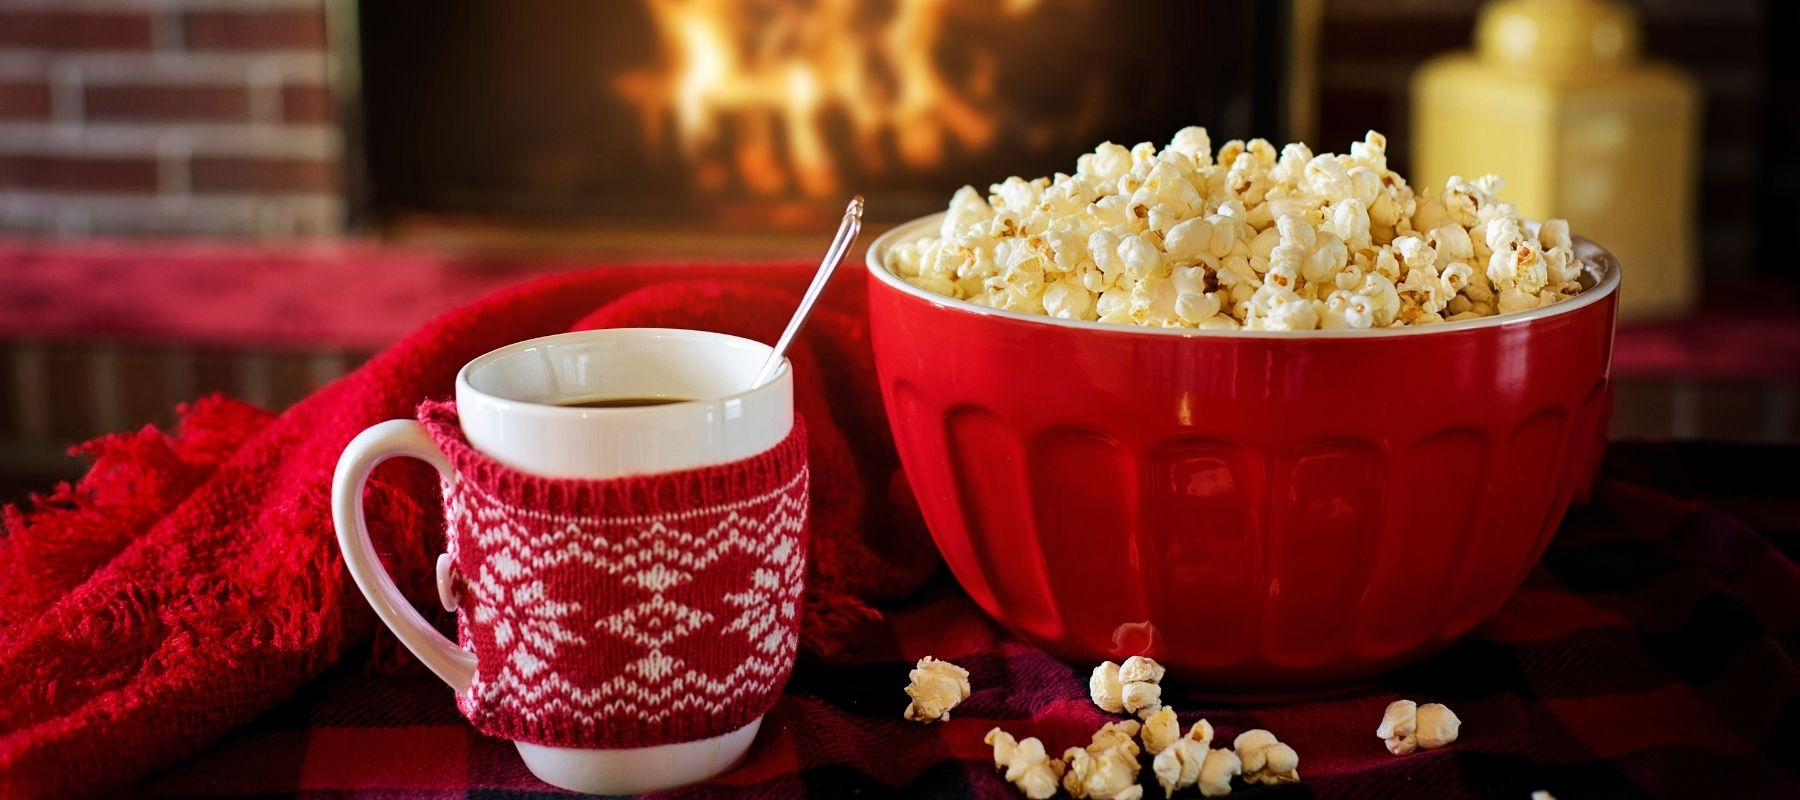 Hot cocoa and popcorn beside a warm fire during the holiday season